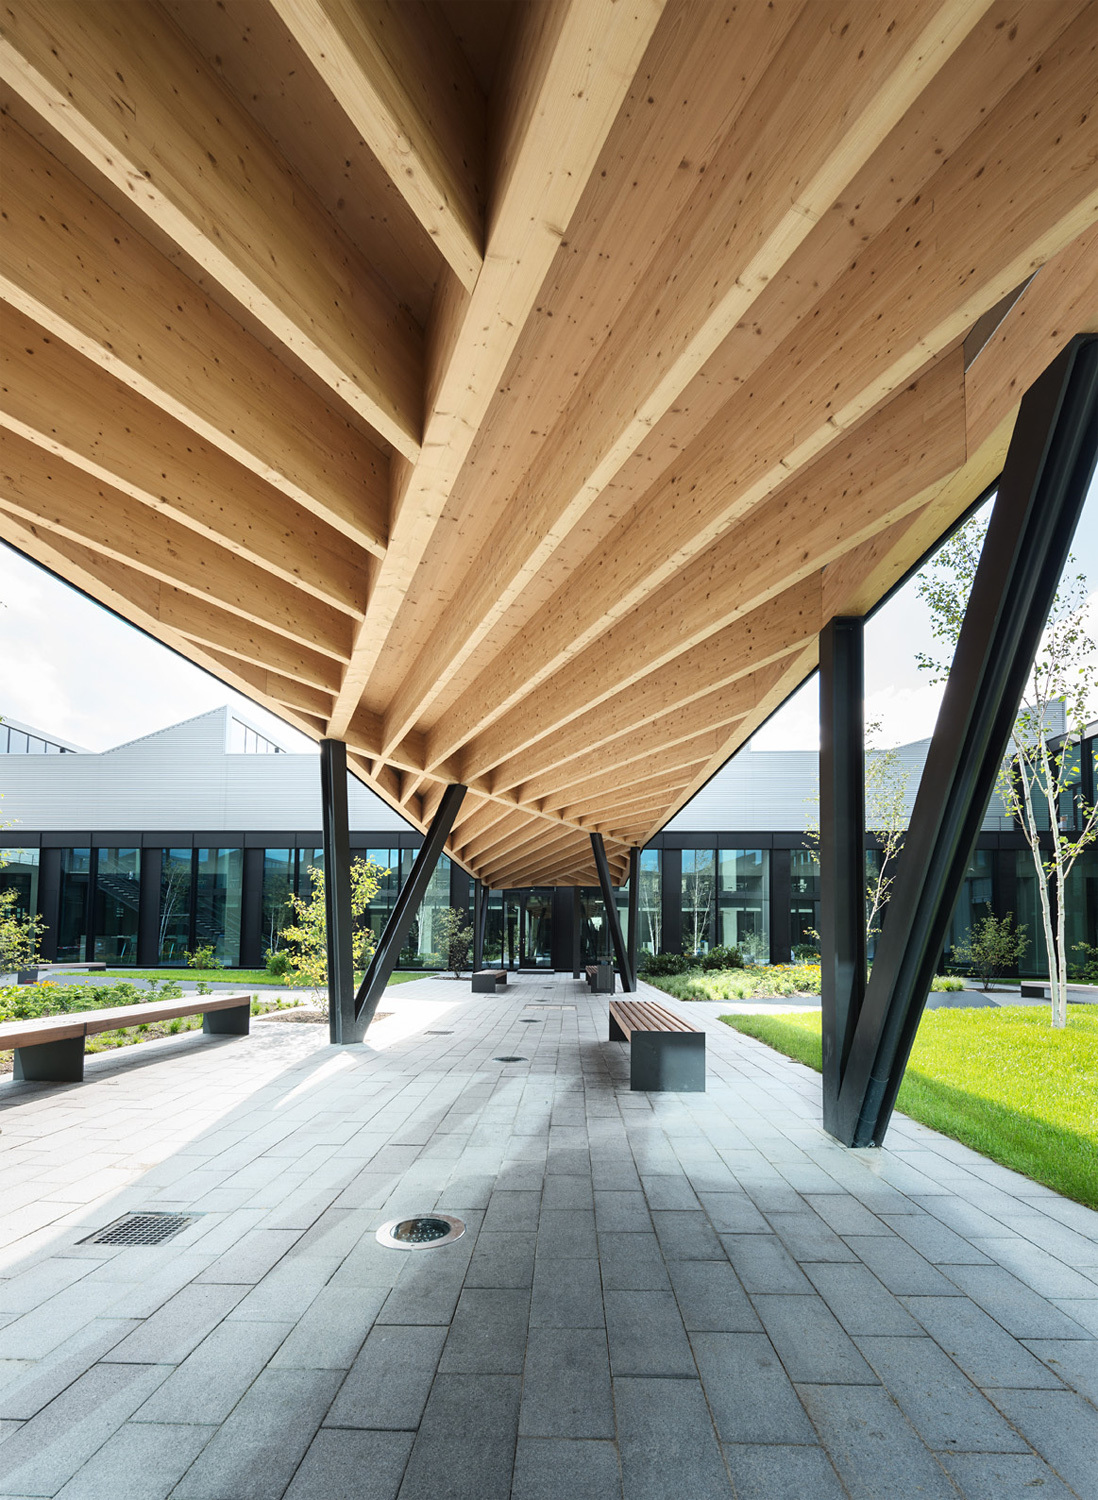 Ten Top Images On Archinect S Quot Wood Quot Pinterest Board